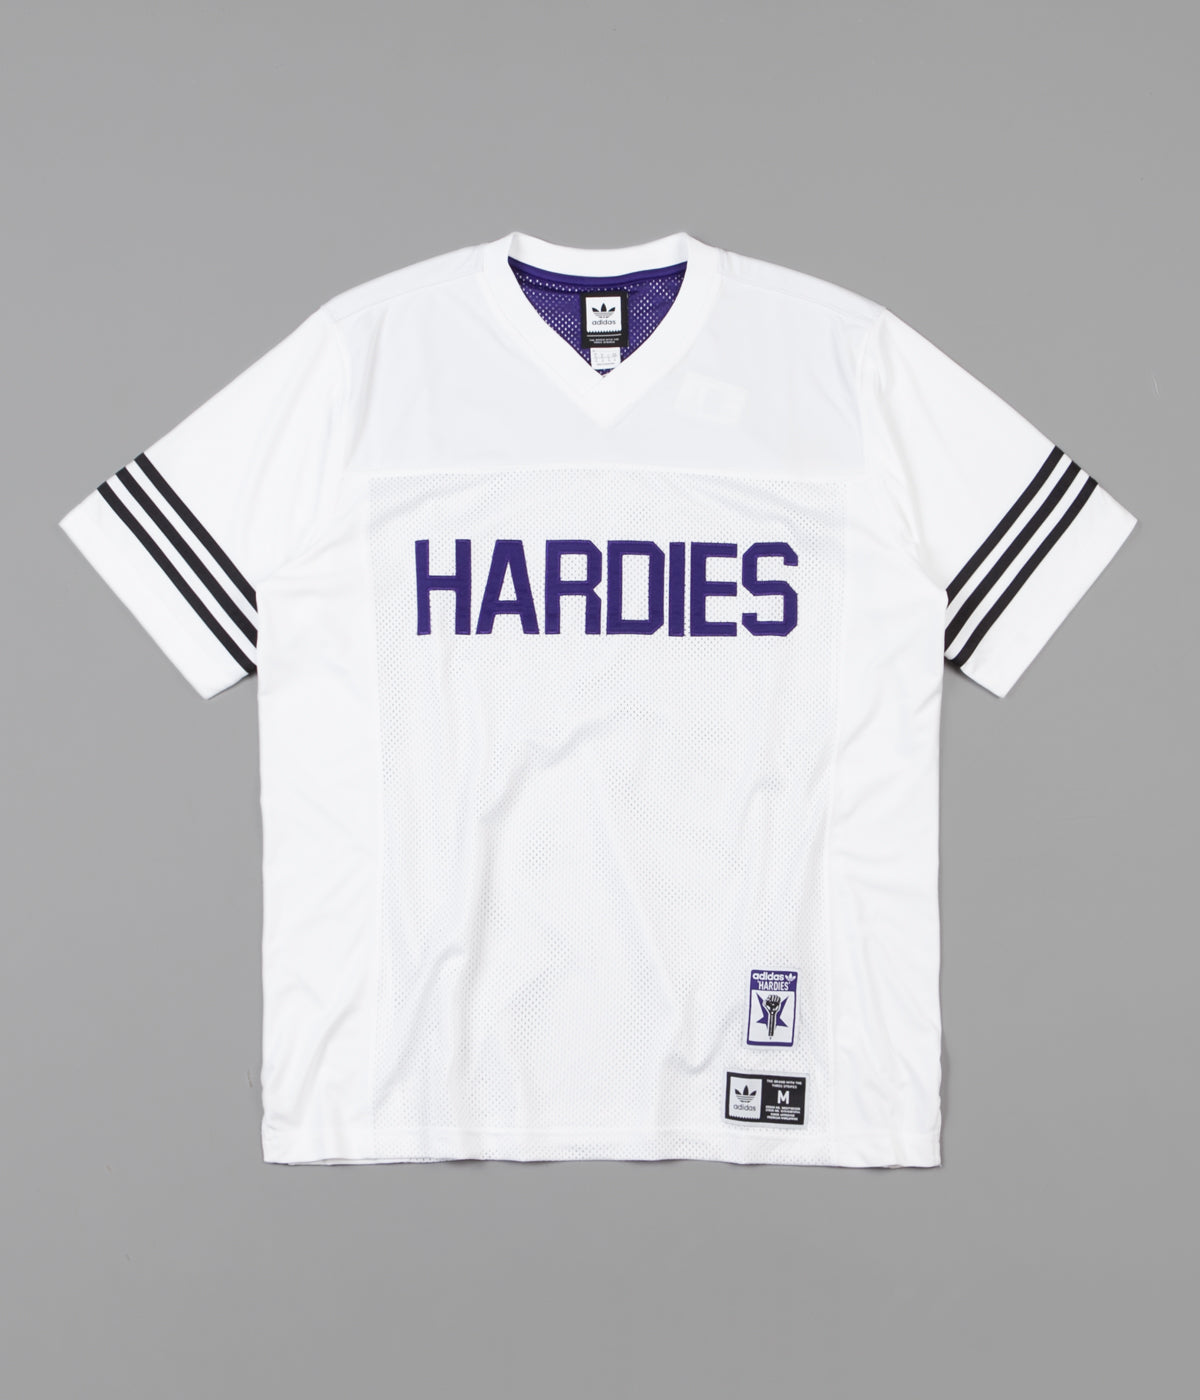 7dc13c5acb Adidas x Hardies Jersey - White / Collegiate Purple / Black